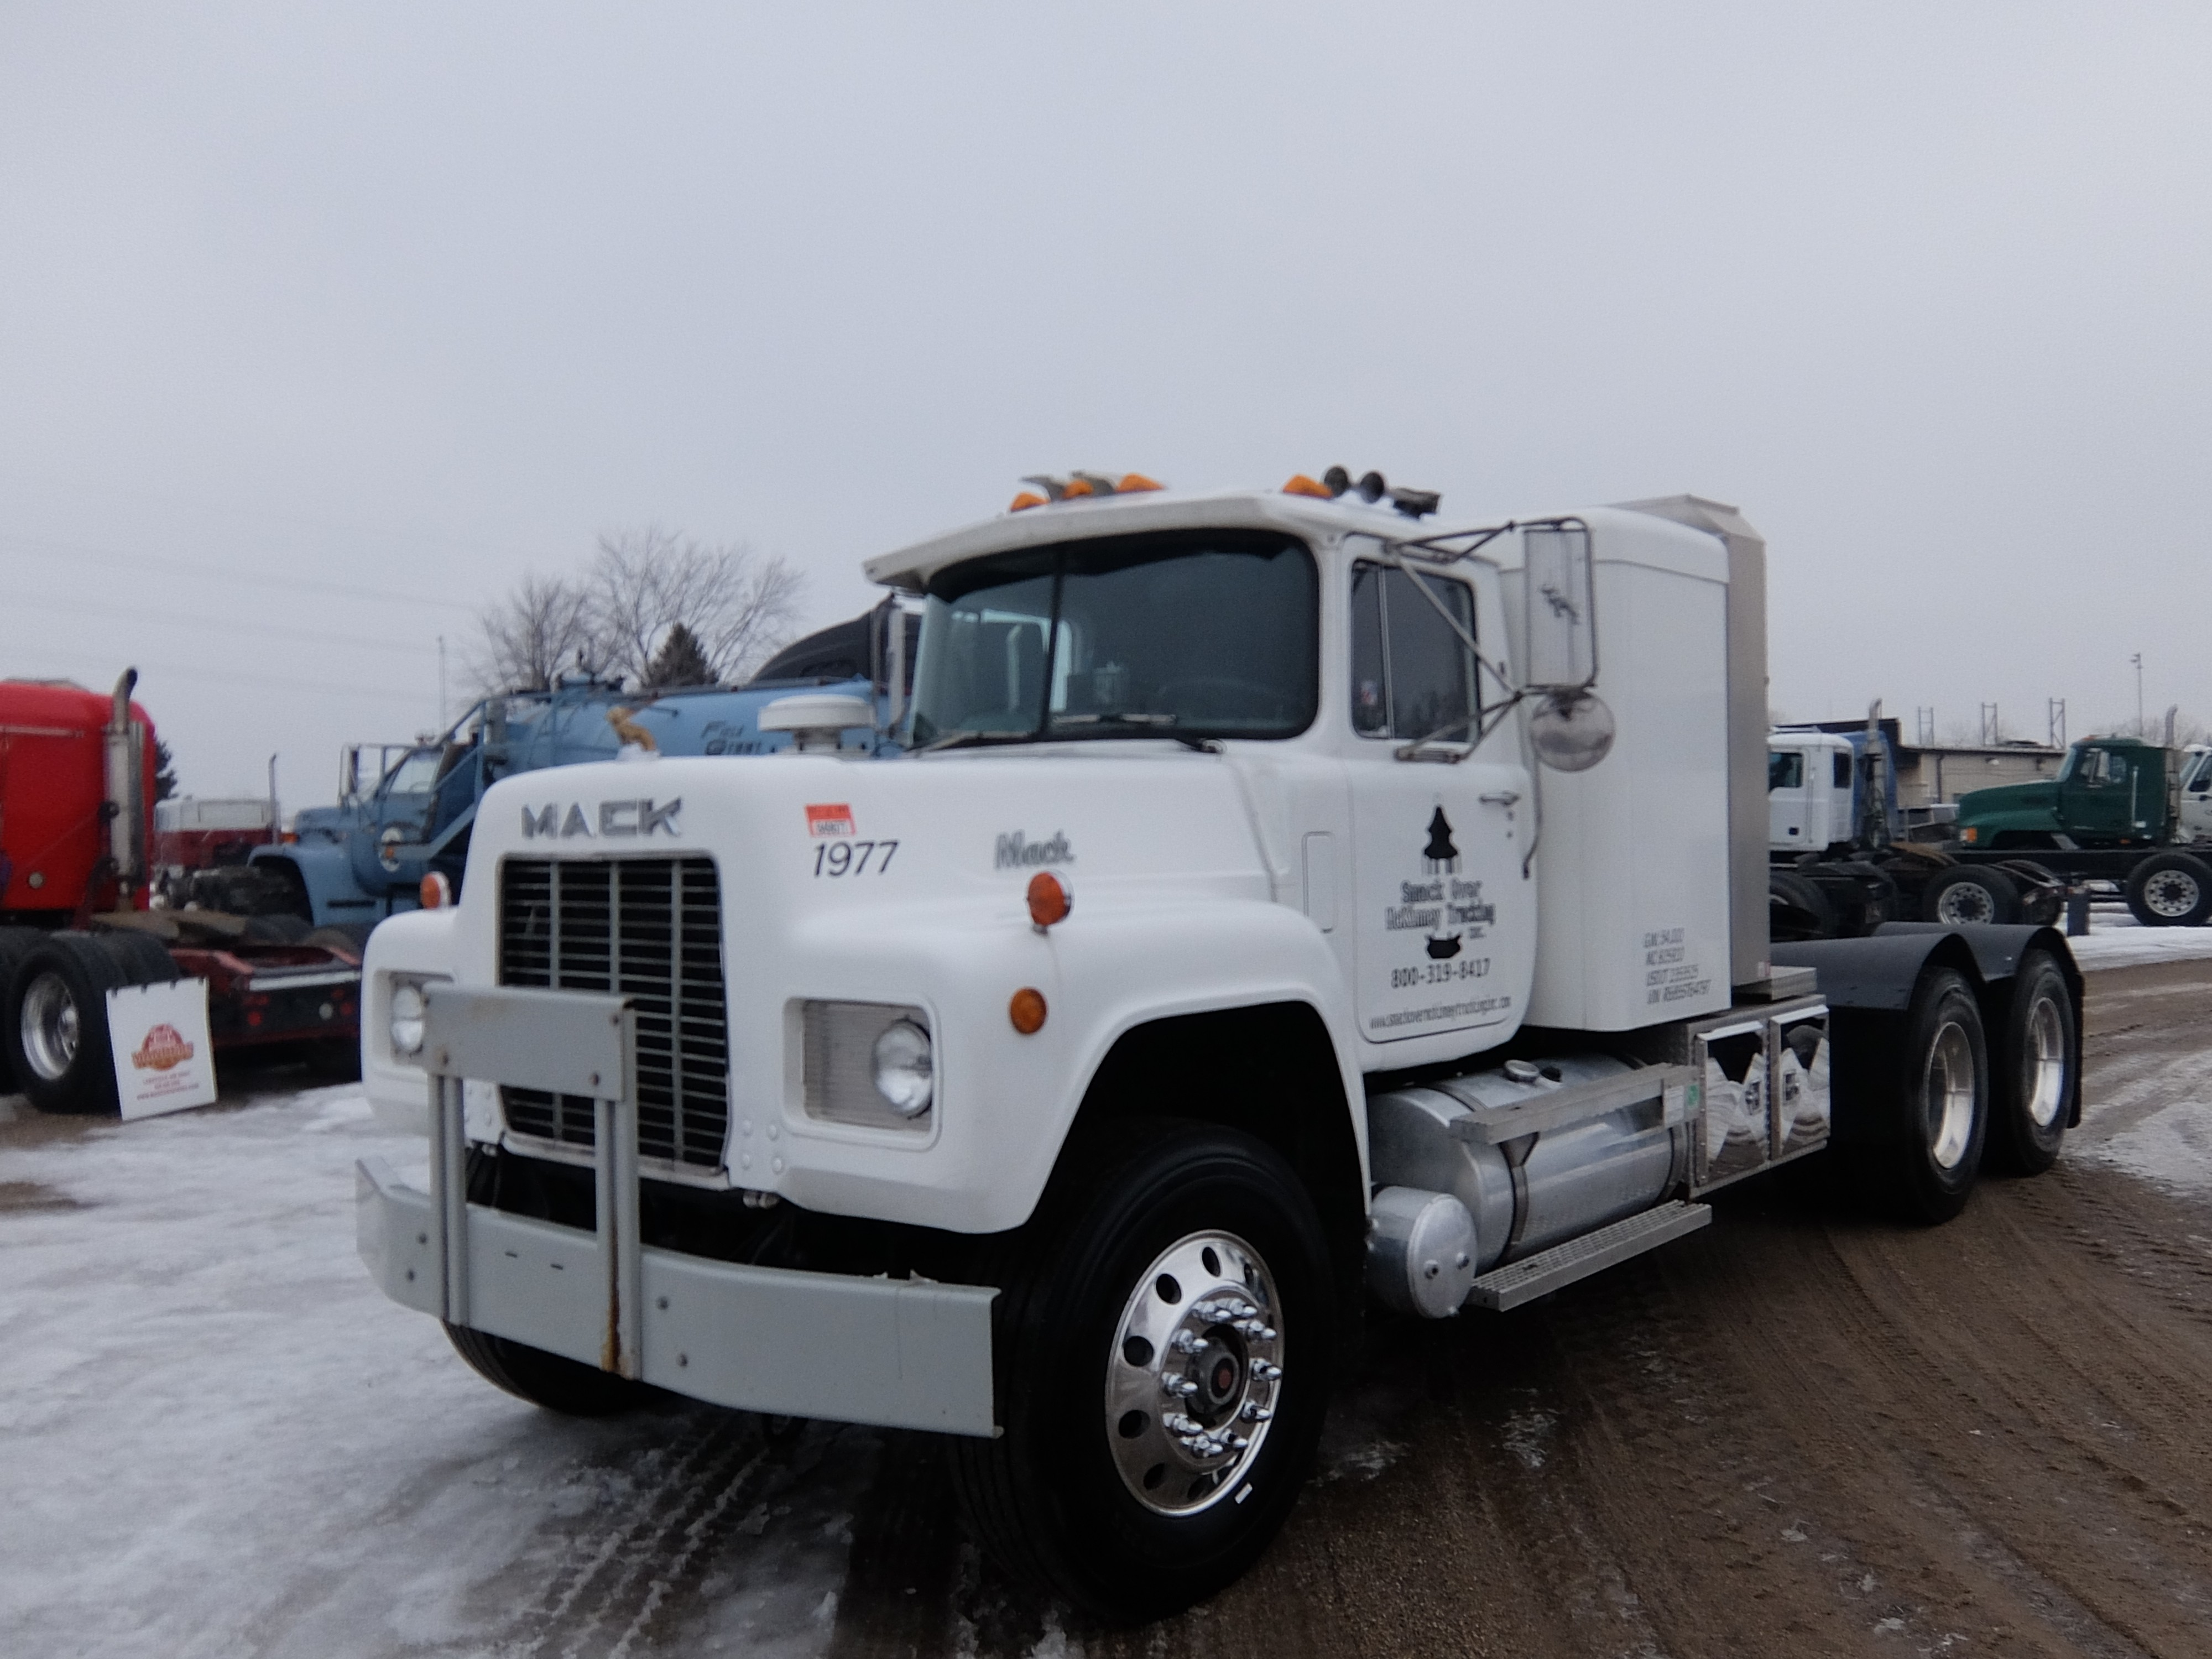 1977 R model Trucks for Sale BigMackTrucks